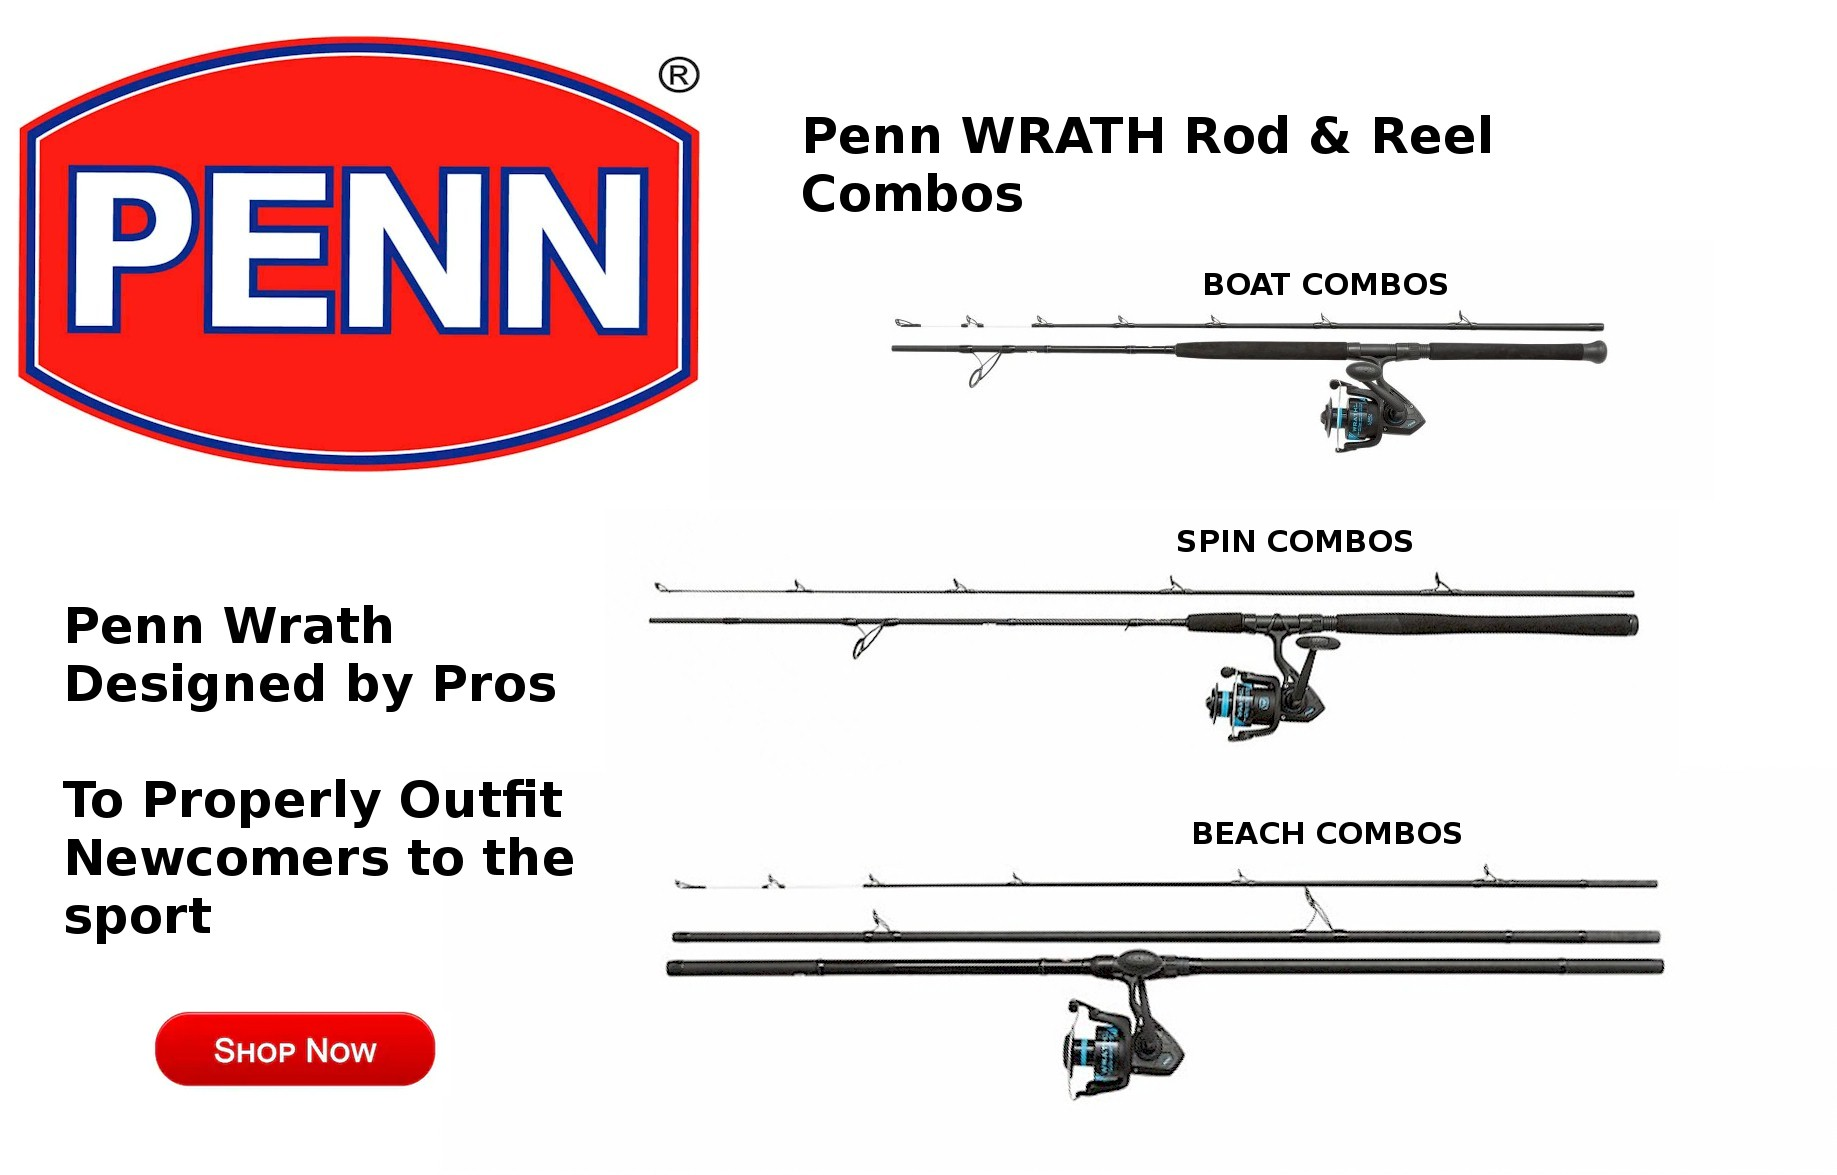 Penn Wrath Rod & Reel Combos home